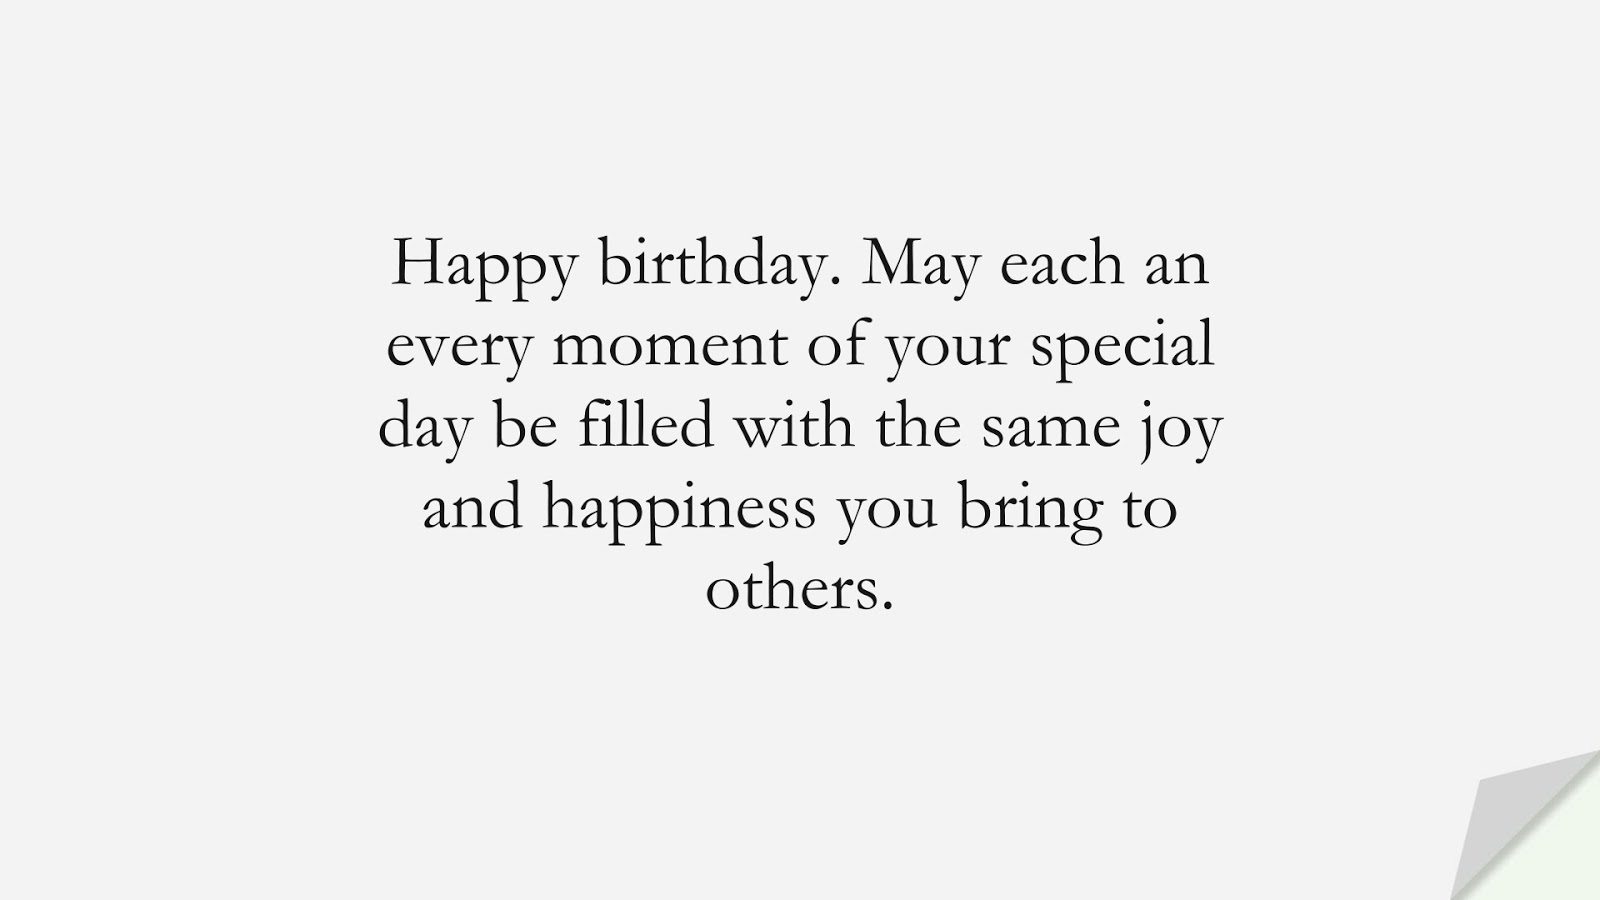 Happy birthday. May each an every moment of your special day be filled with the same joy and happiness you bring to others.FALSE